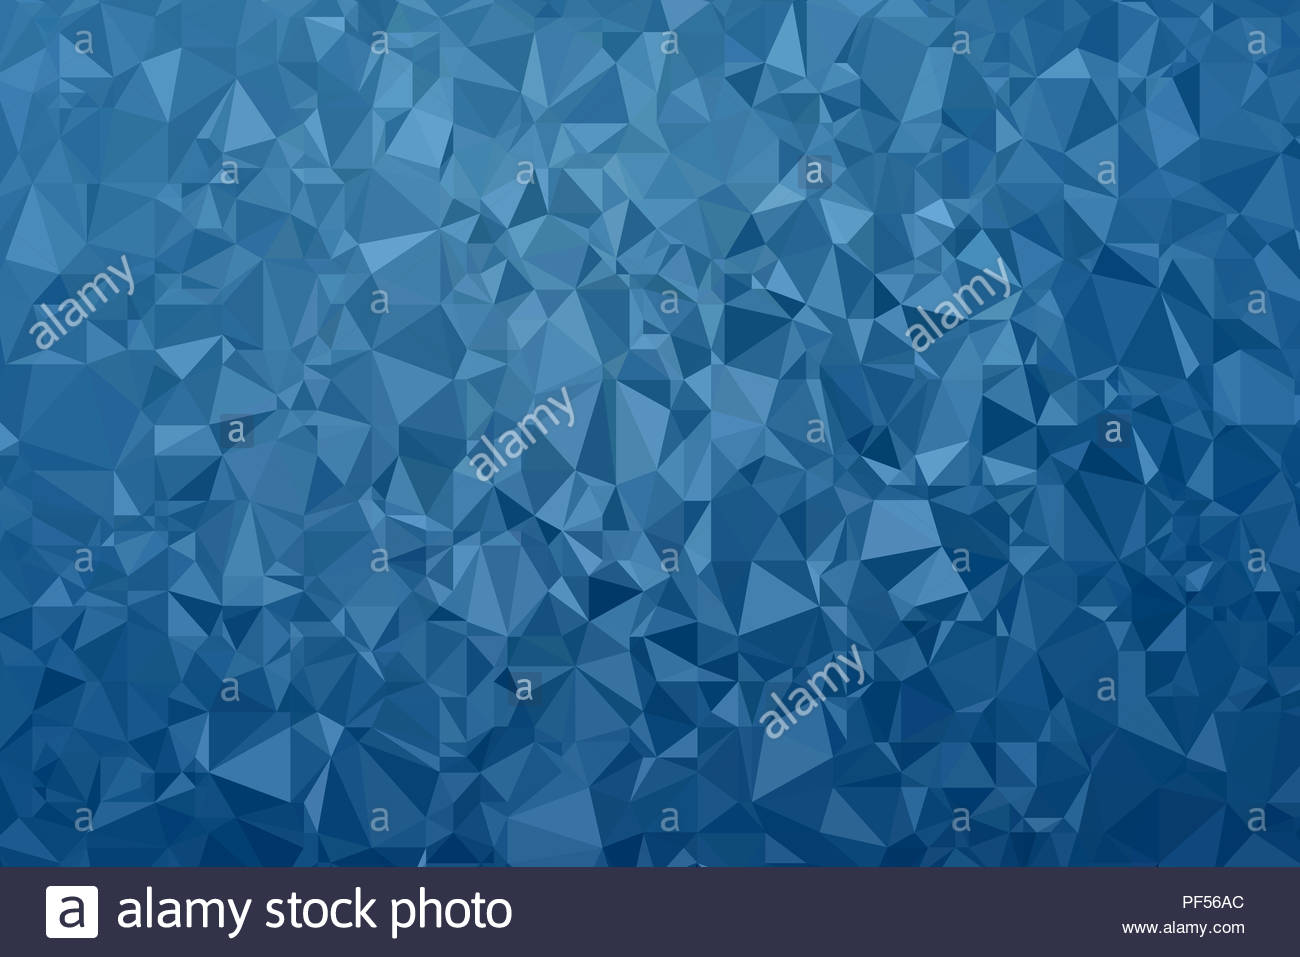 A high definition geometric 3D background for use in websites 1300x957